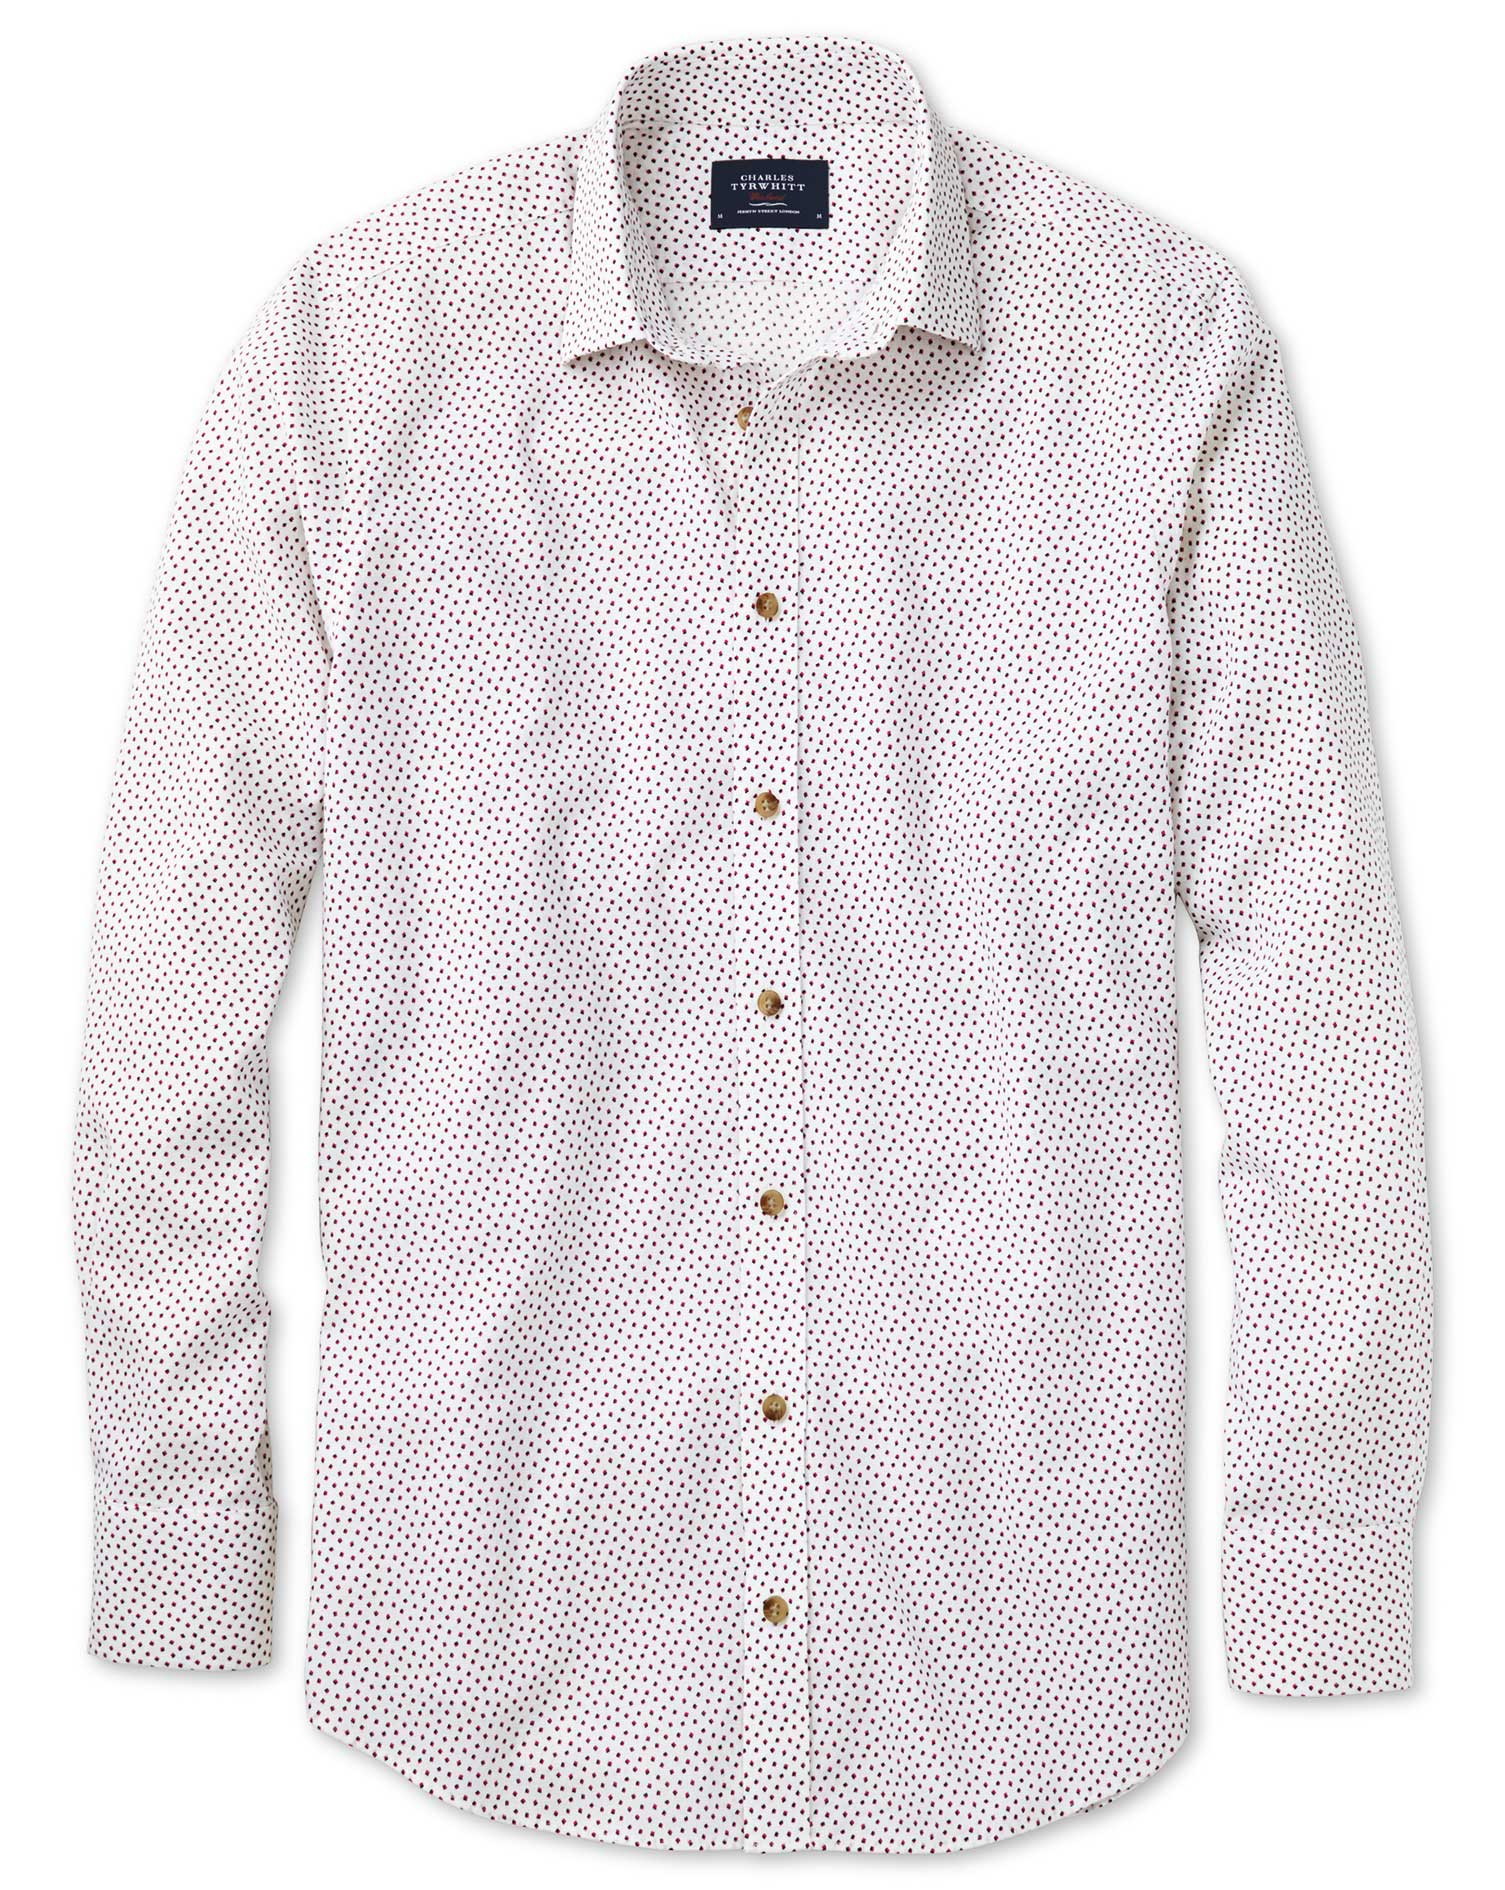 Slim Fit White and Pink Square Print Shirt Single Cuff Size XS by Charles Tyrwhitt